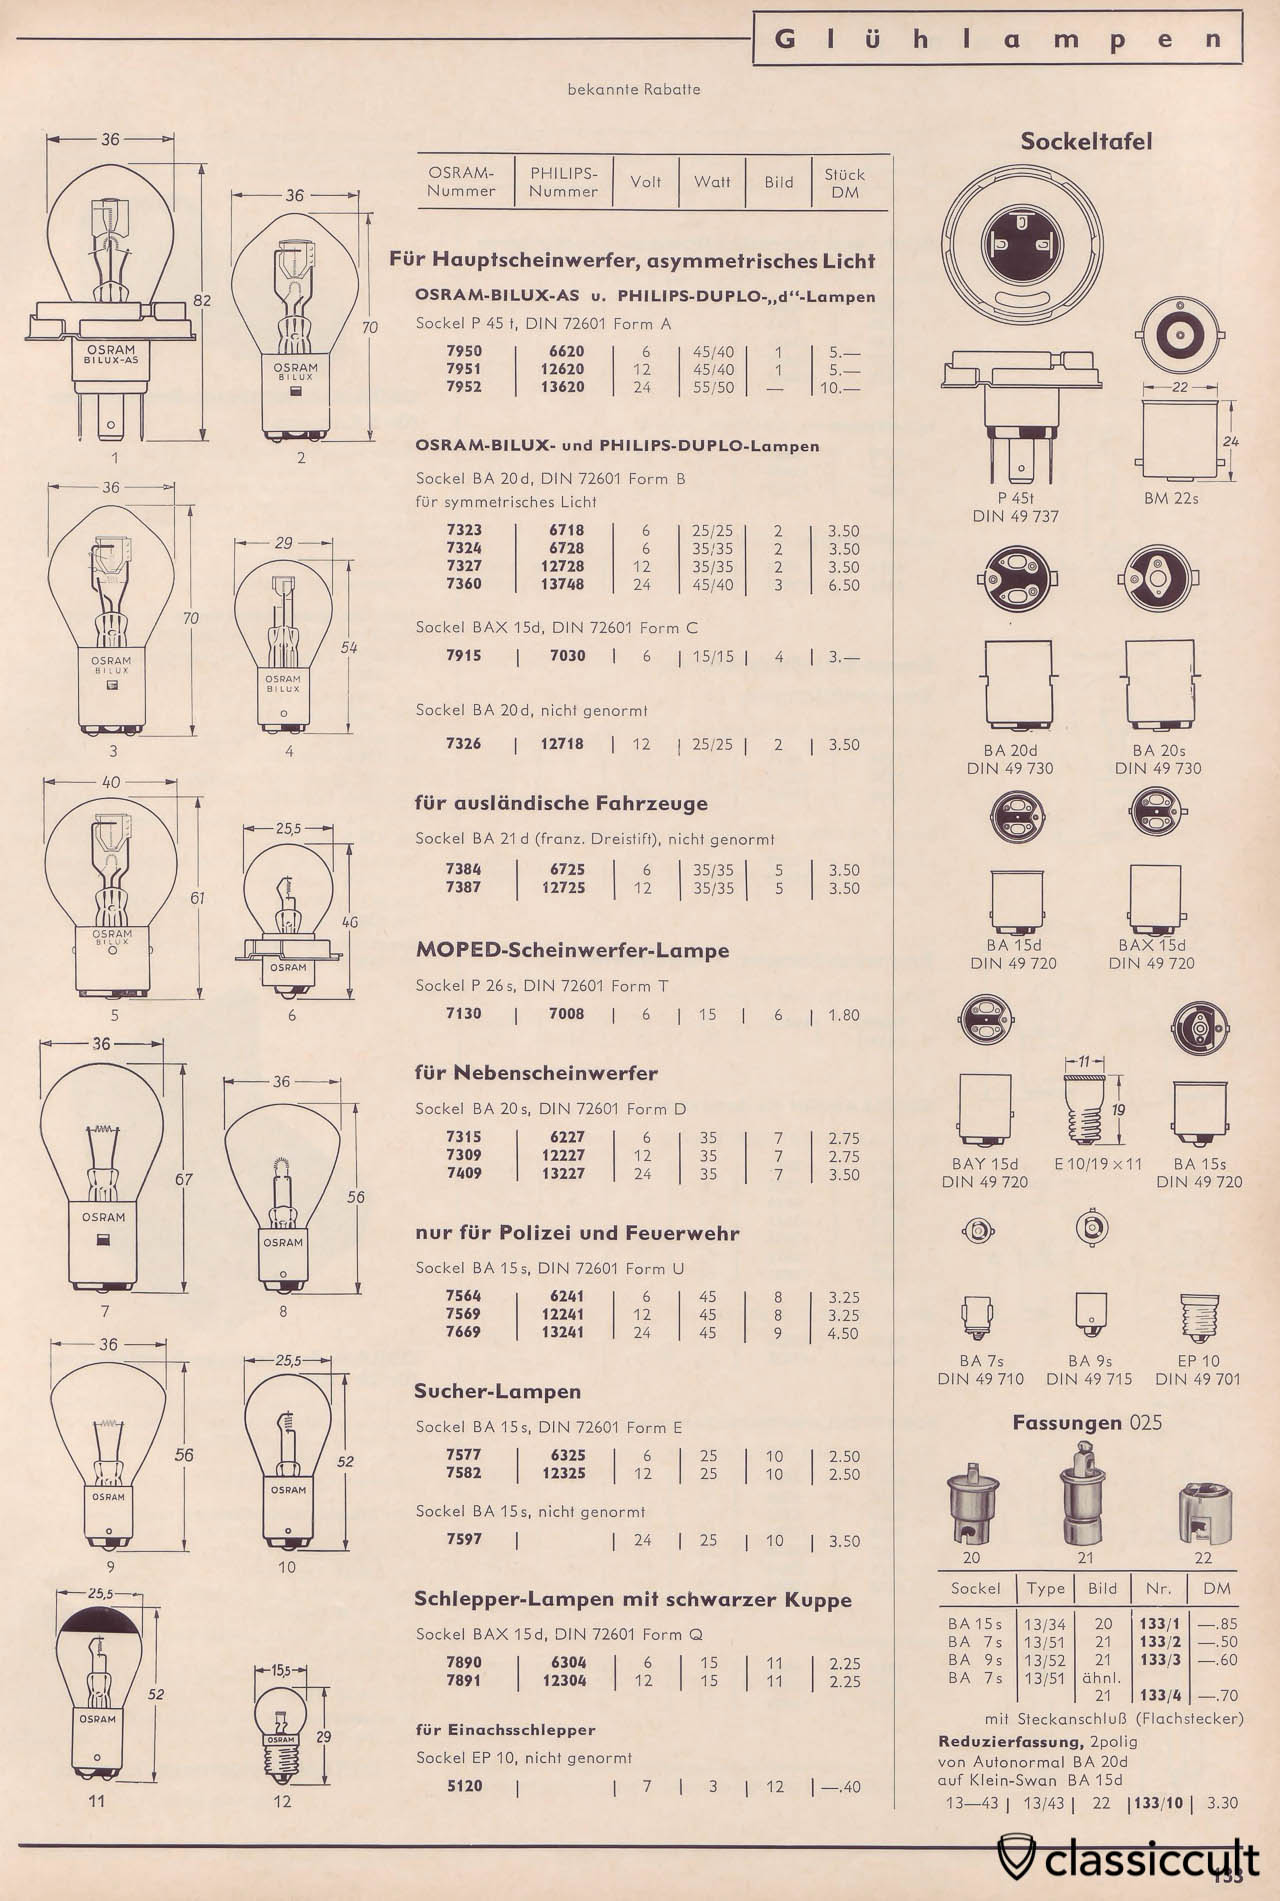 Vintage VW Light Bulbs from Osram and Philips Bulbs for Bilux Headlights, Fog Lights, Police Fire Department Lights and Search Lamps, Catalog 1965 Page 133